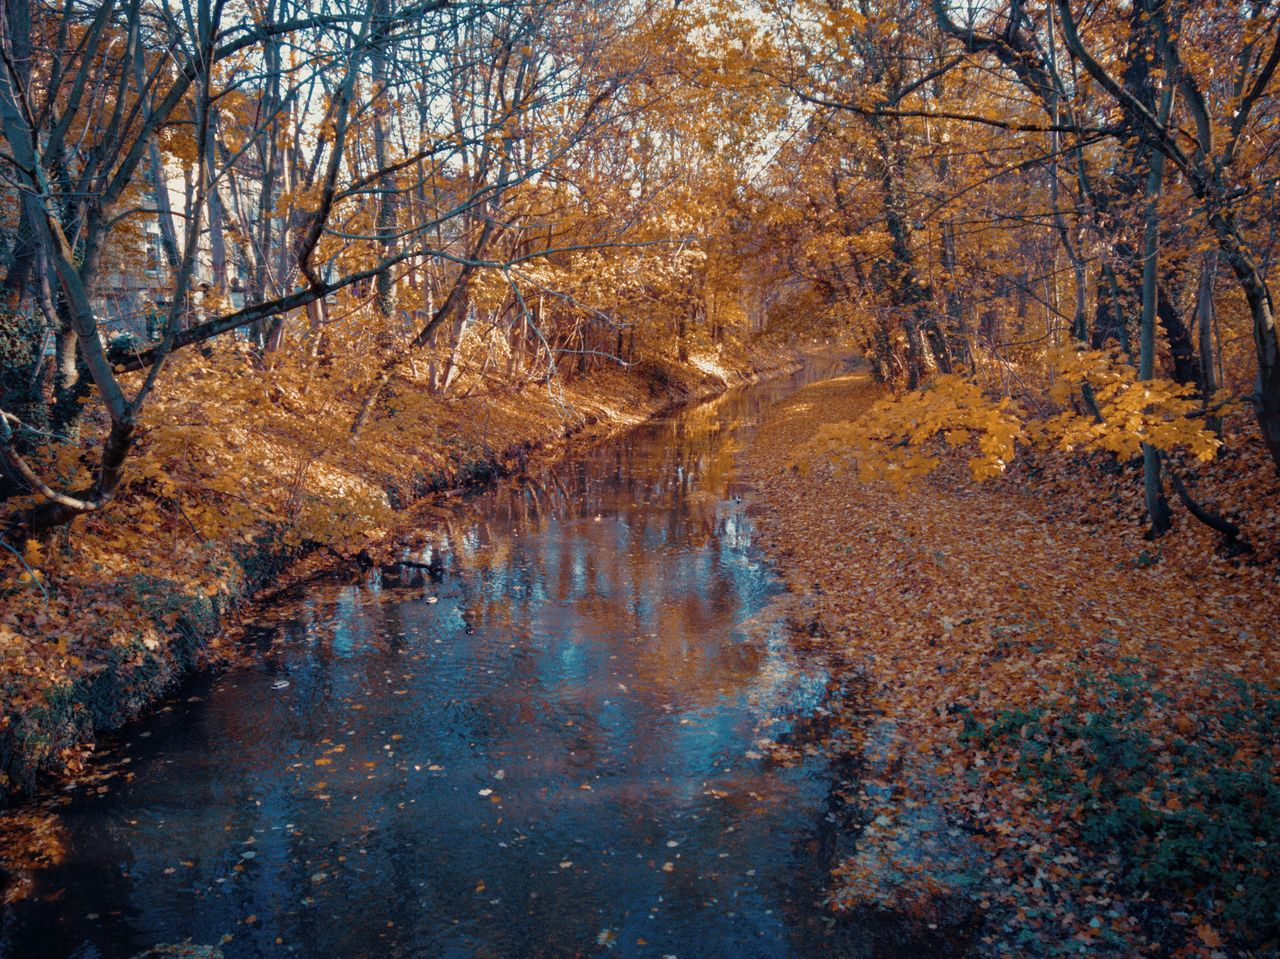 autumn, tree, water, plant, forest, land, change, tranquility, nature, no people, beauty in nature, tranquil scene, scenics - nature, reflection, day, orange color, landscape, plant part, leaf, outdoors, woodland, stream - flowing water, autumn collection